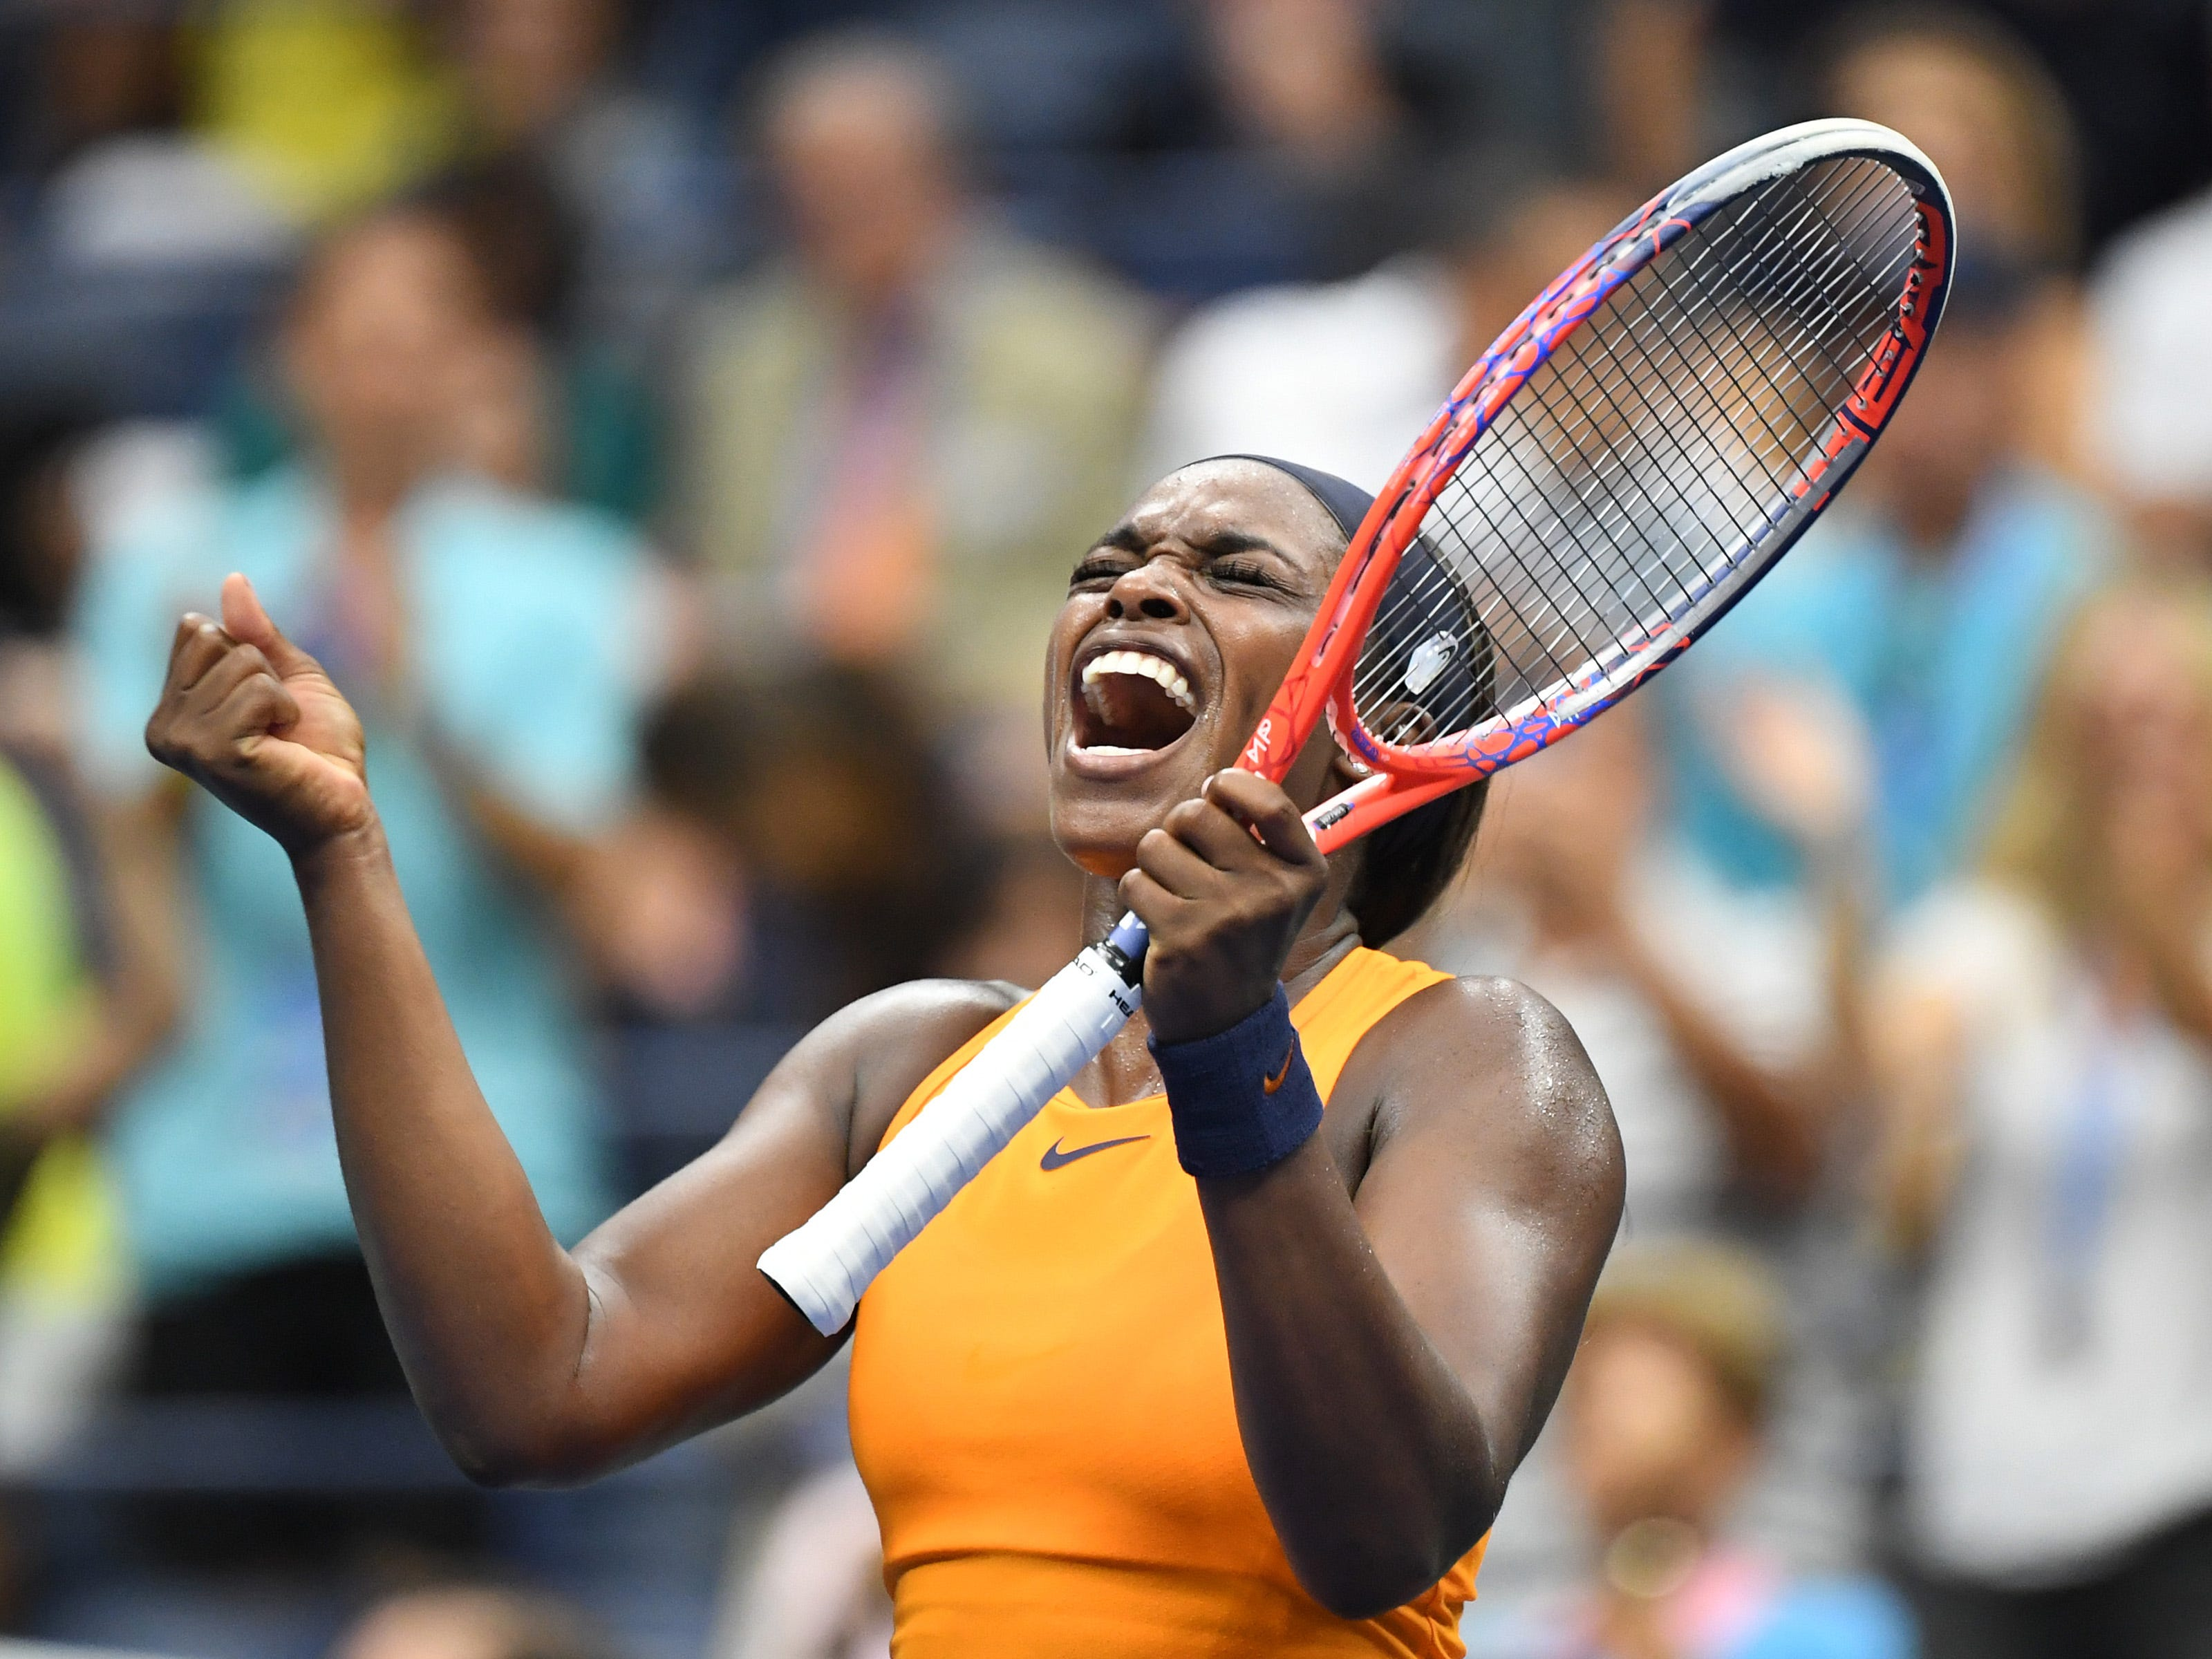 Reigning US Open champion and No. 3 seed Sloane Stephens celebrates after her 6-3, 6-4 third-round victory over two-time US Open finalist Victoria Azarenka.